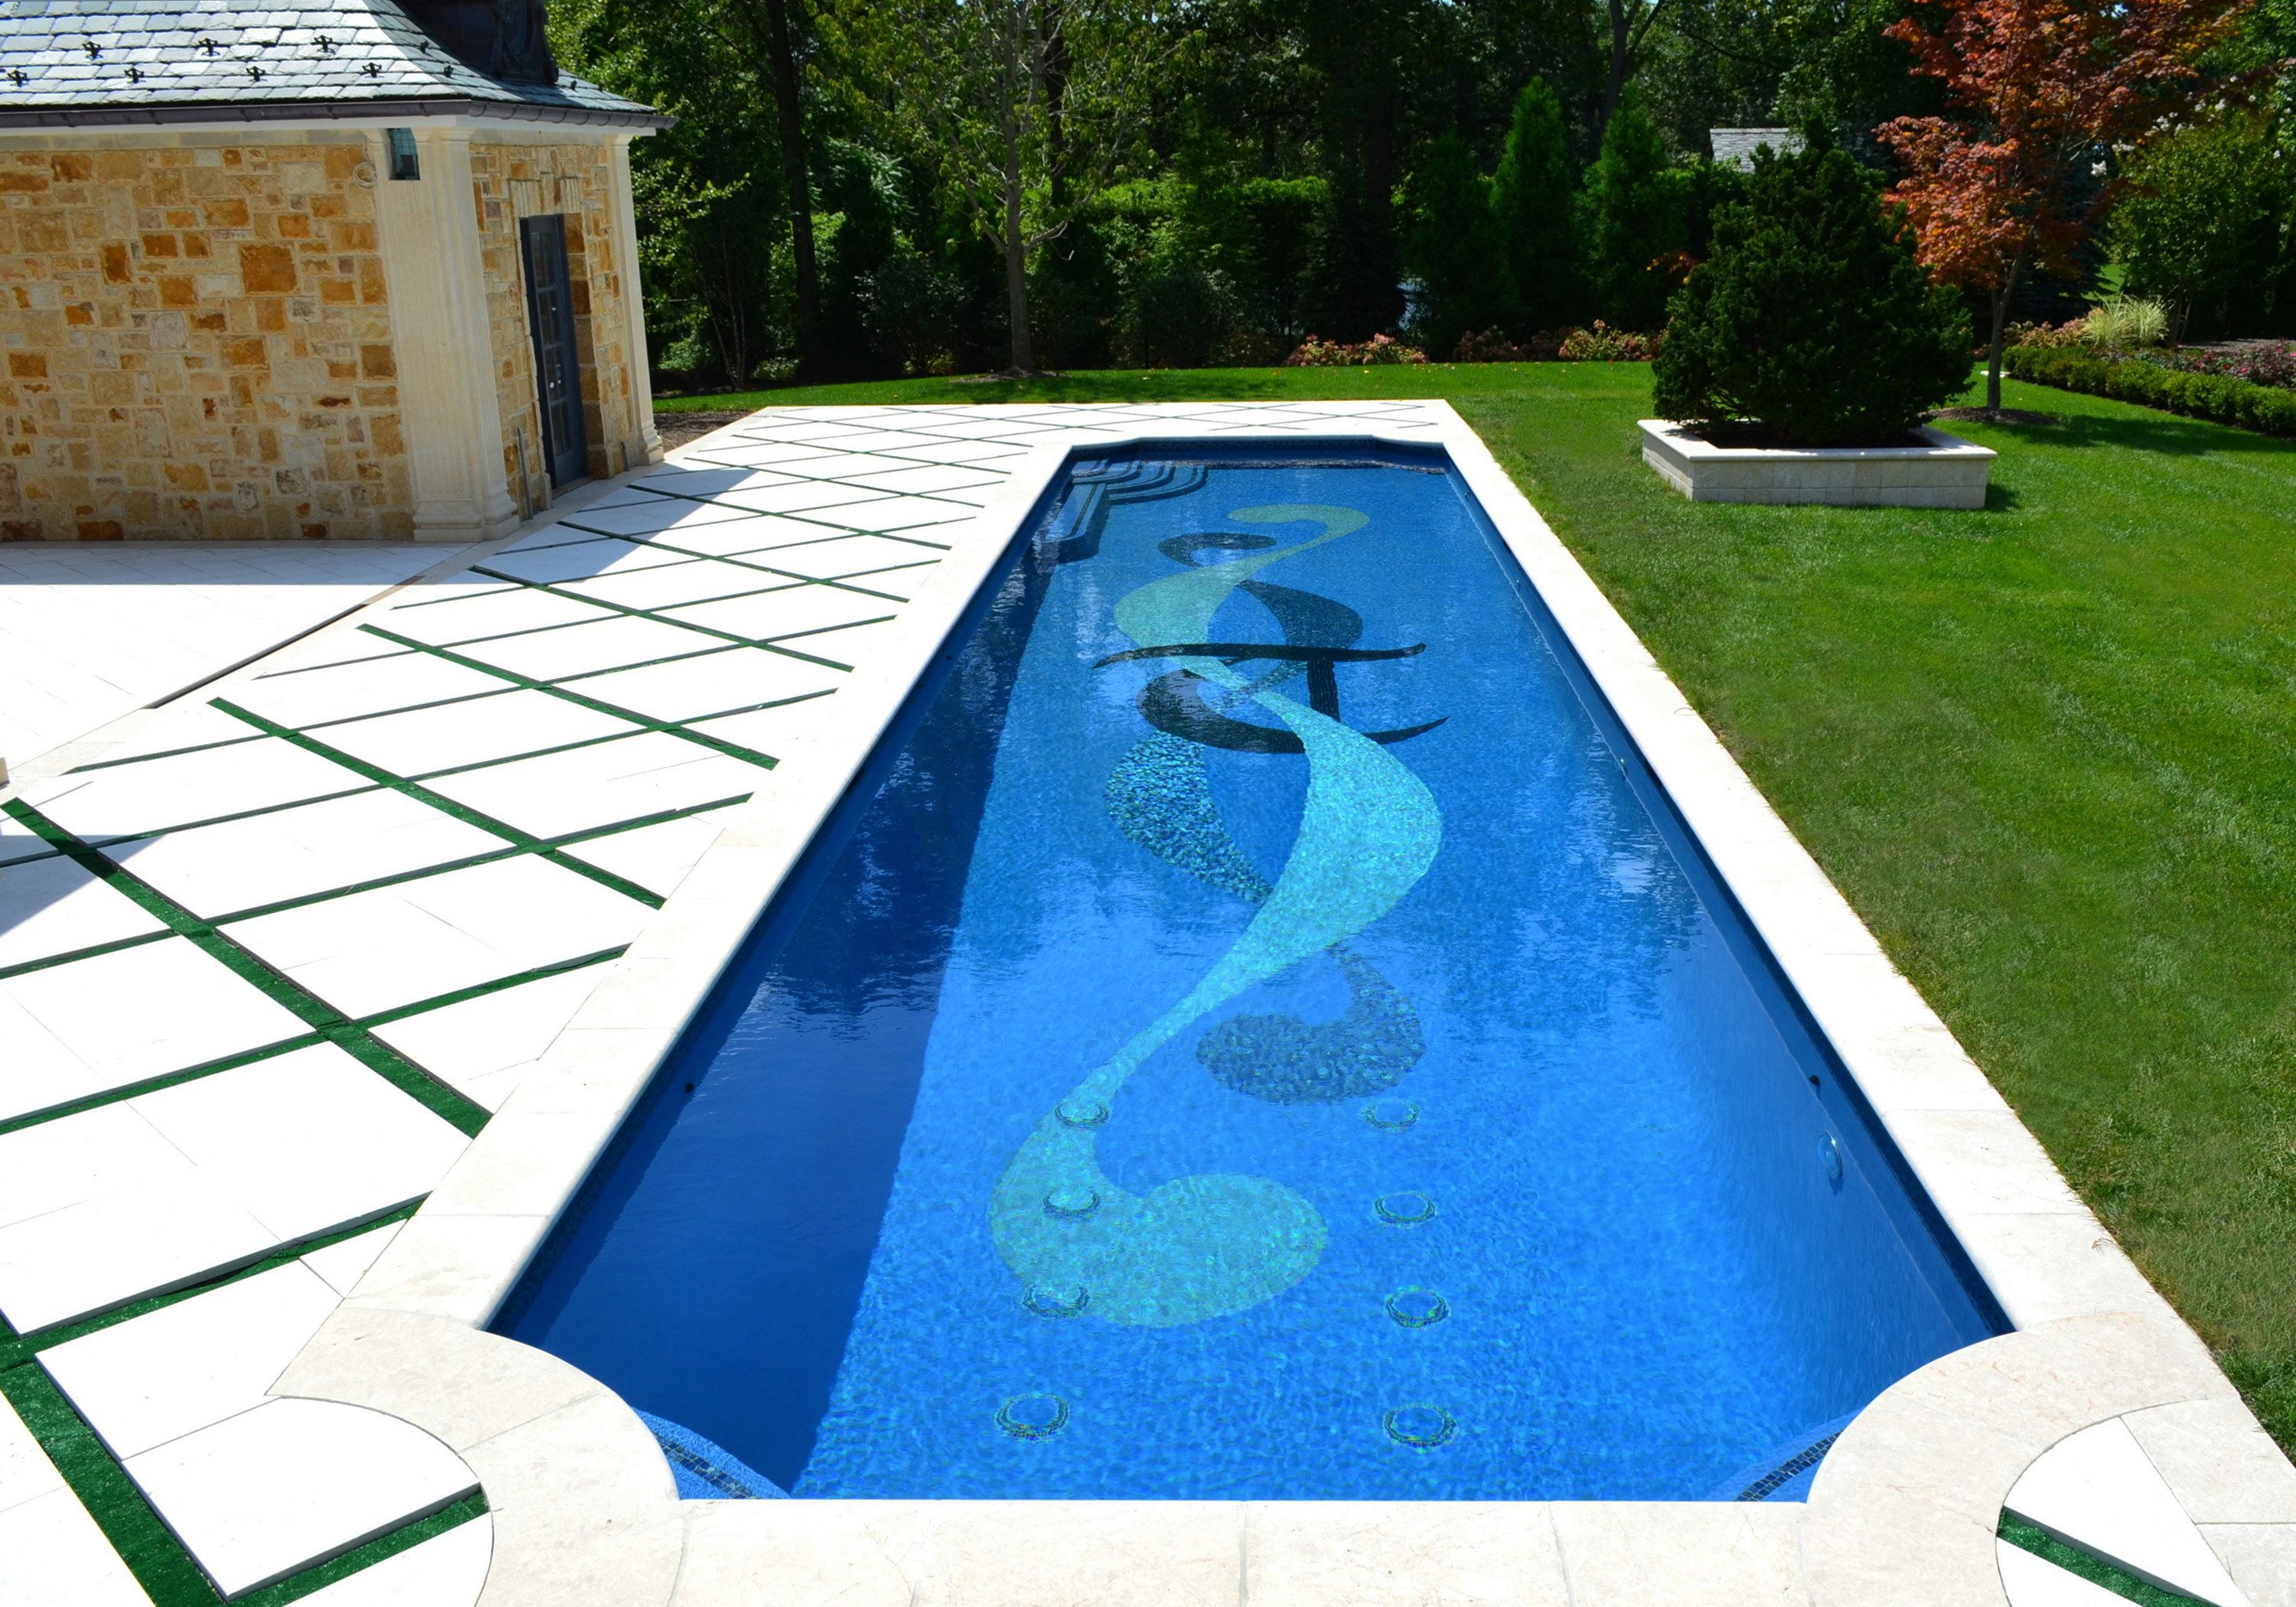 Bergen county nj firm wins 2013 best inground swimming pool design award - Swimming pool designs ...